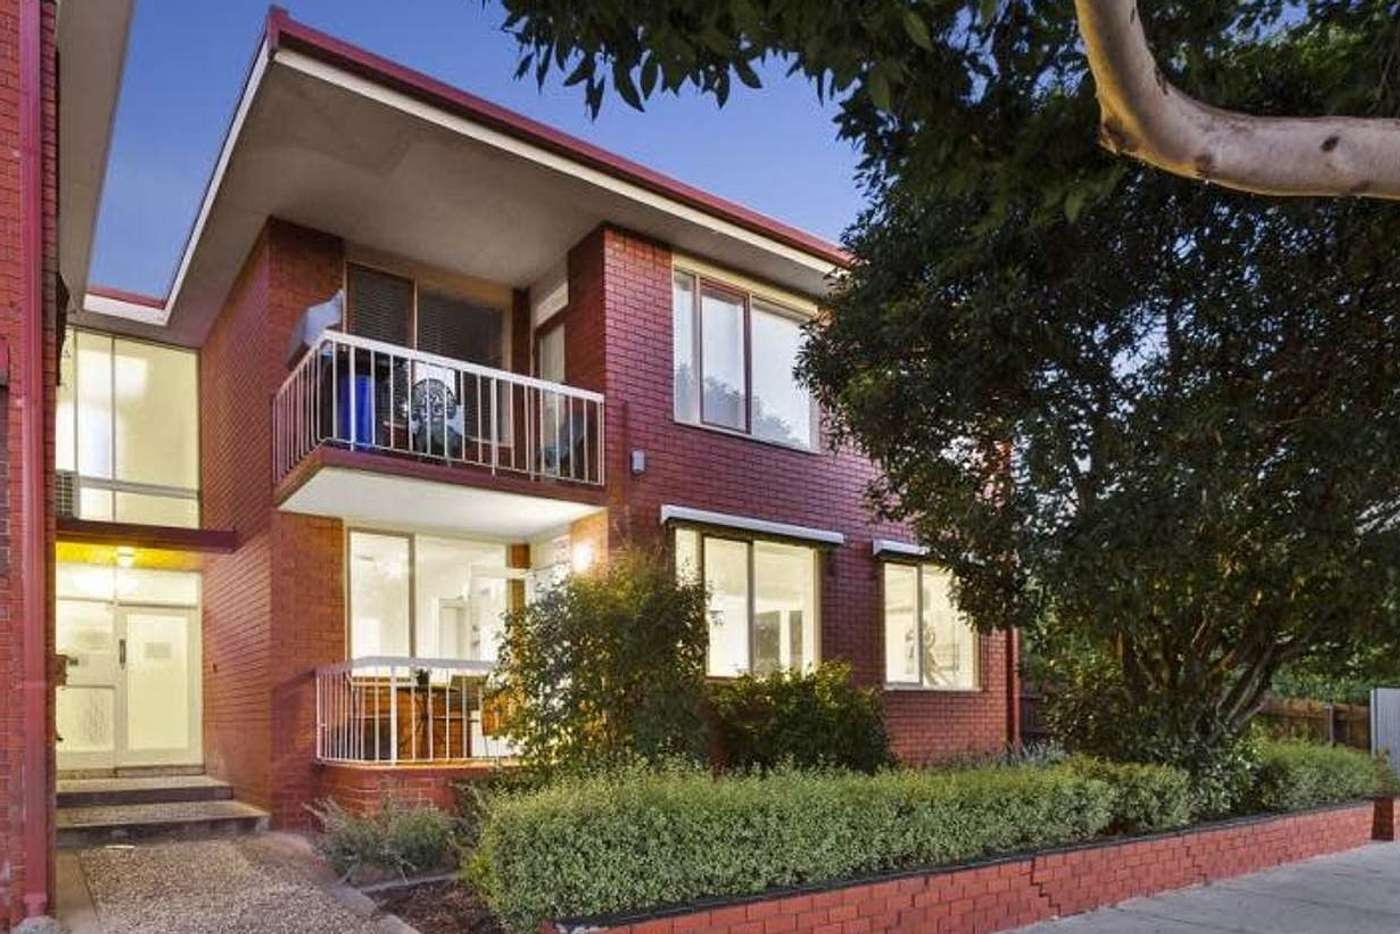 Main view of Homely apartment listing, 5/1464 Malvern Road, Glen Iris VIC 3146